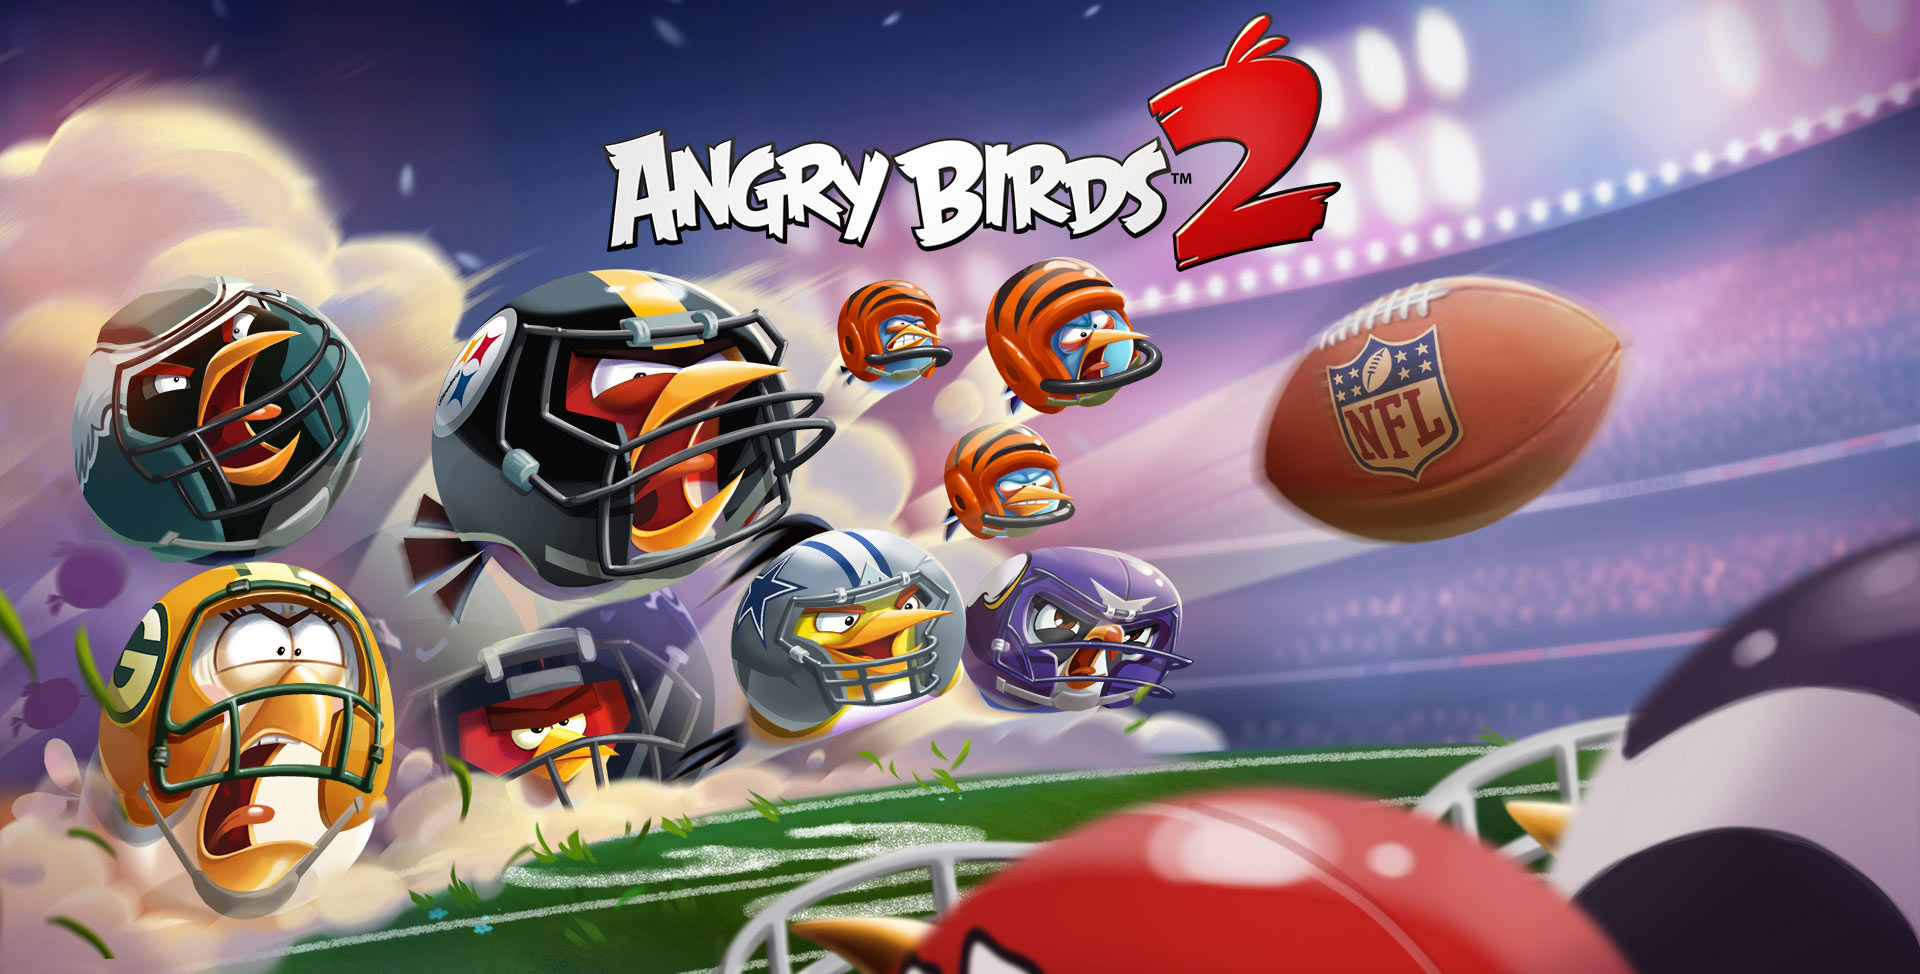 Angry Birds Super Bowl LII NFL event